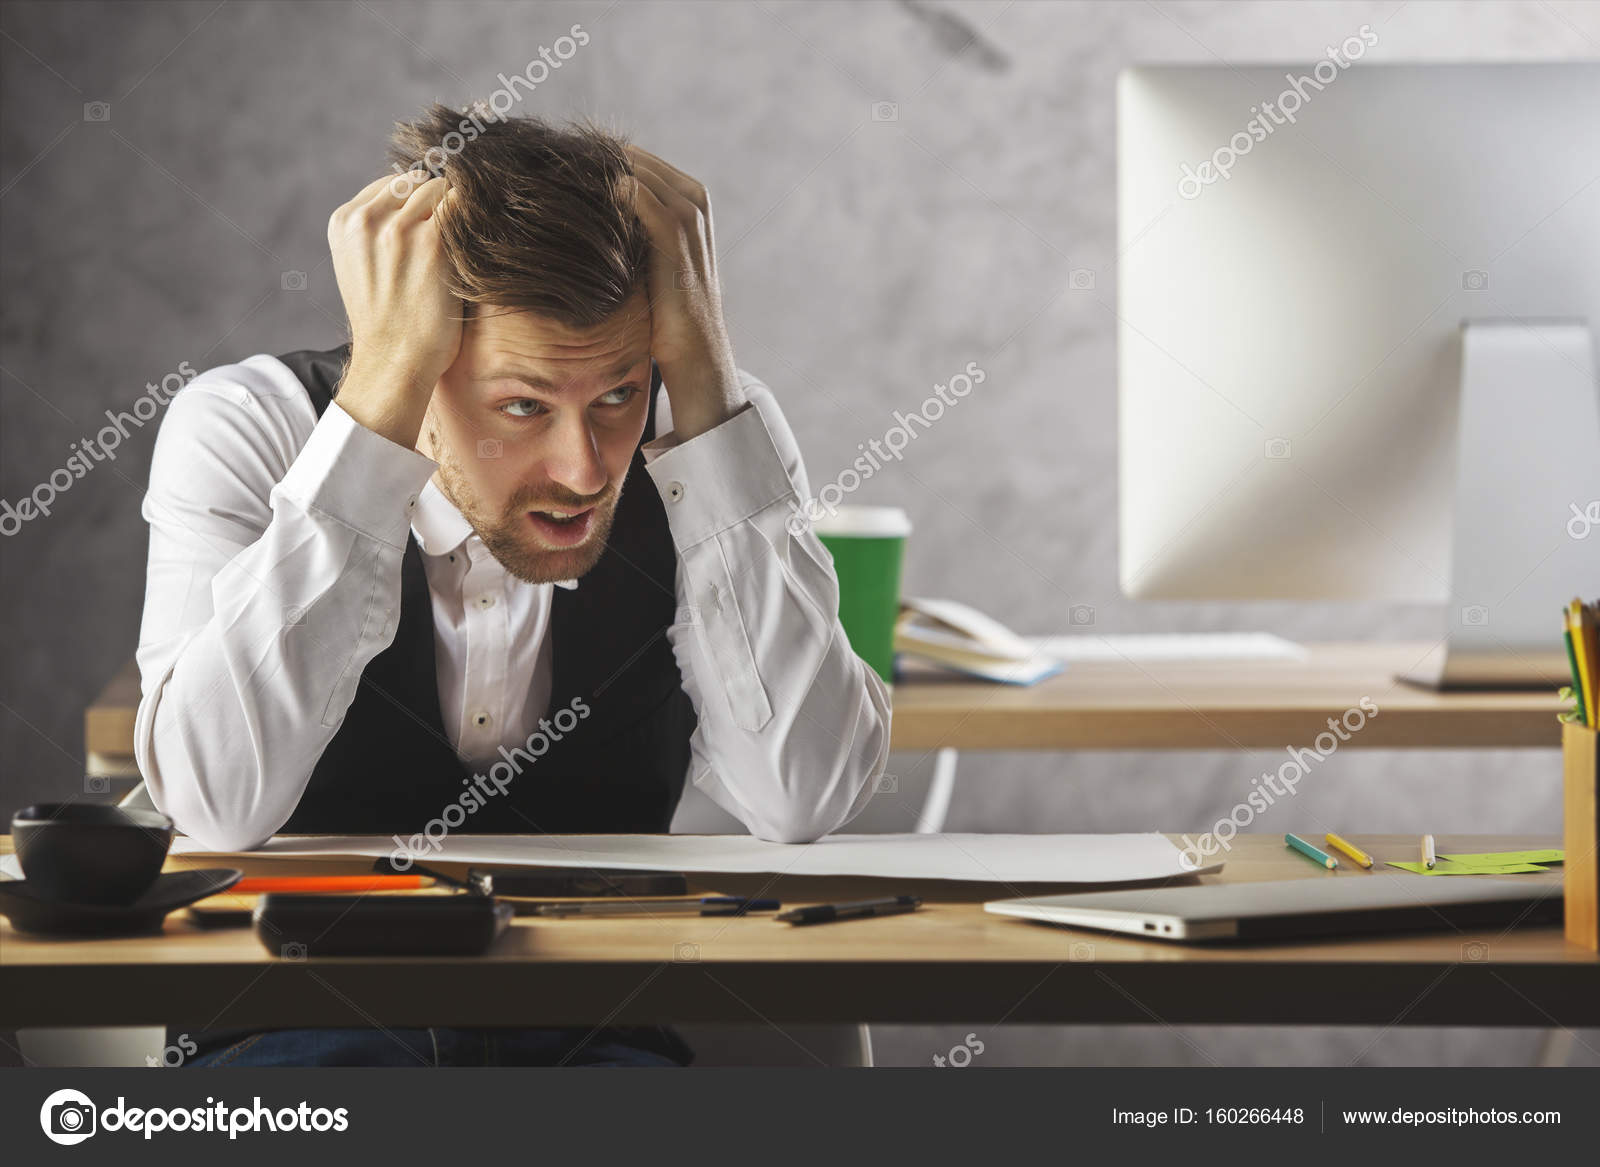 european cup office coffee. Stressed Young European Businessman At Workplace With Computer, Supplies, Coffee Cup And Other Items Office T